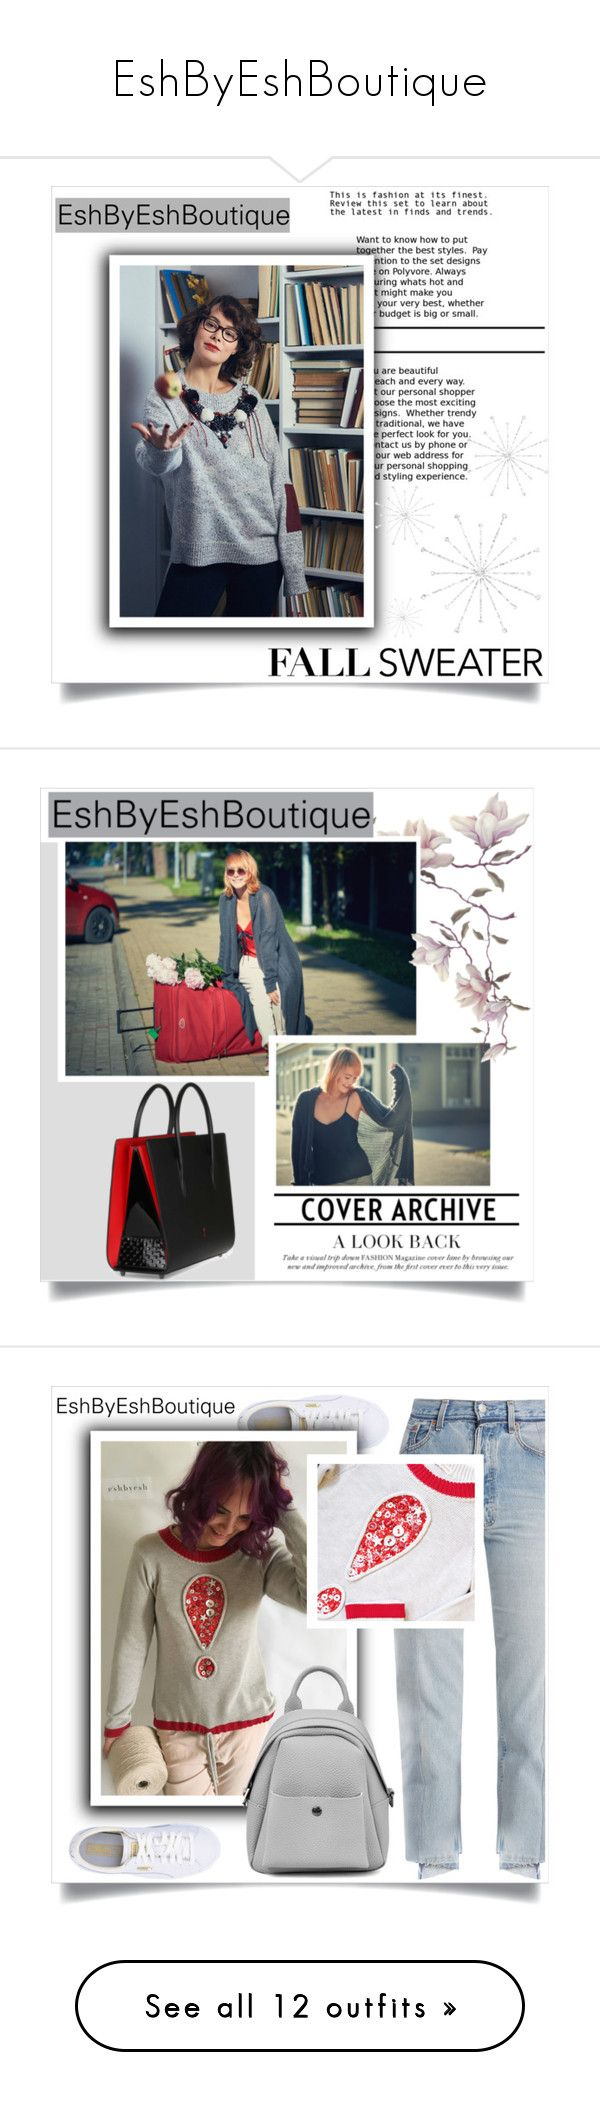 """""""EshByEshBoutique"""" by amra-mak ❤ liked on Polyvore featuring EshByEshBoutique, Christian Louboutin, Puma, Vetements, Bliss and Mischief, Dsquared2, Skechers, Casadei, The Row and Fendi"""